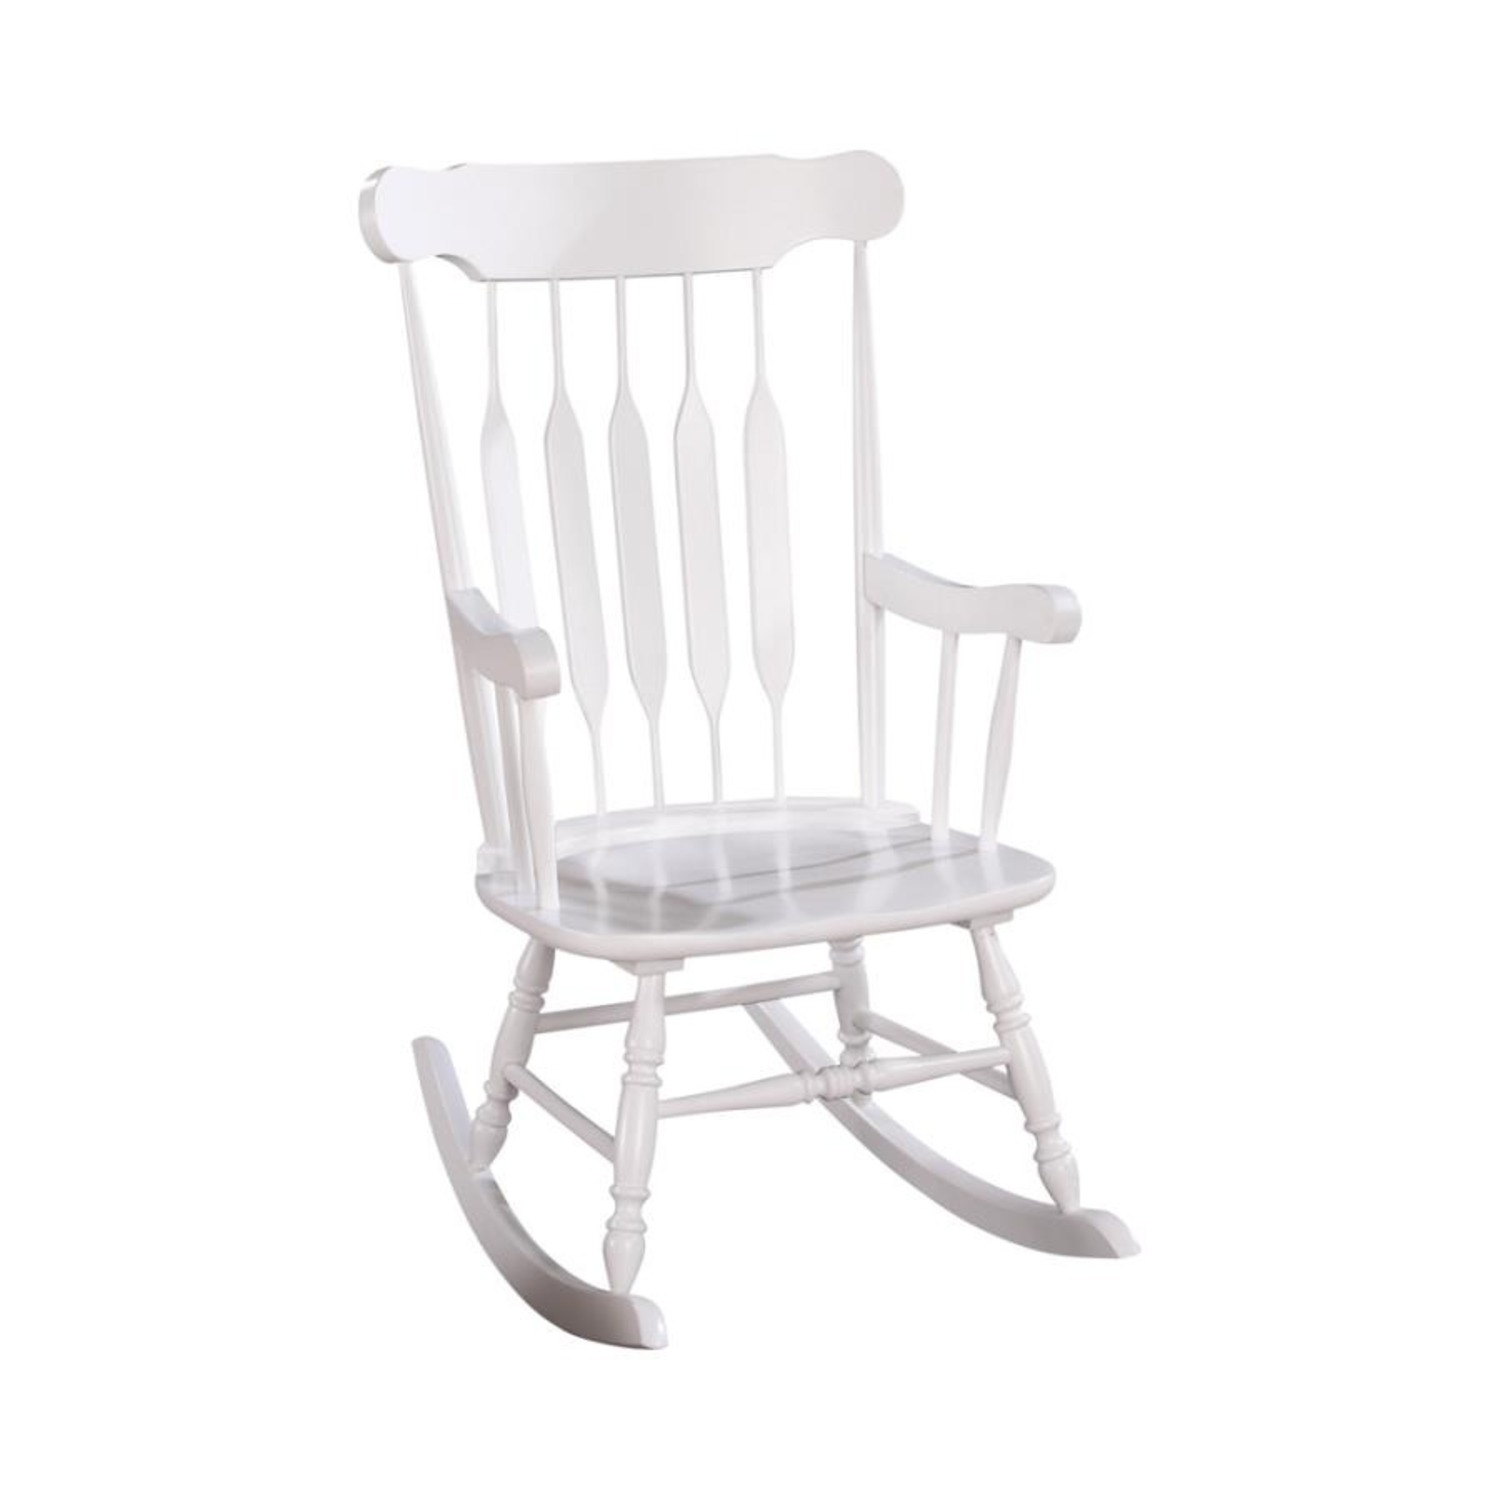 Rocking Chair In White Rubberwood Construction - image-0